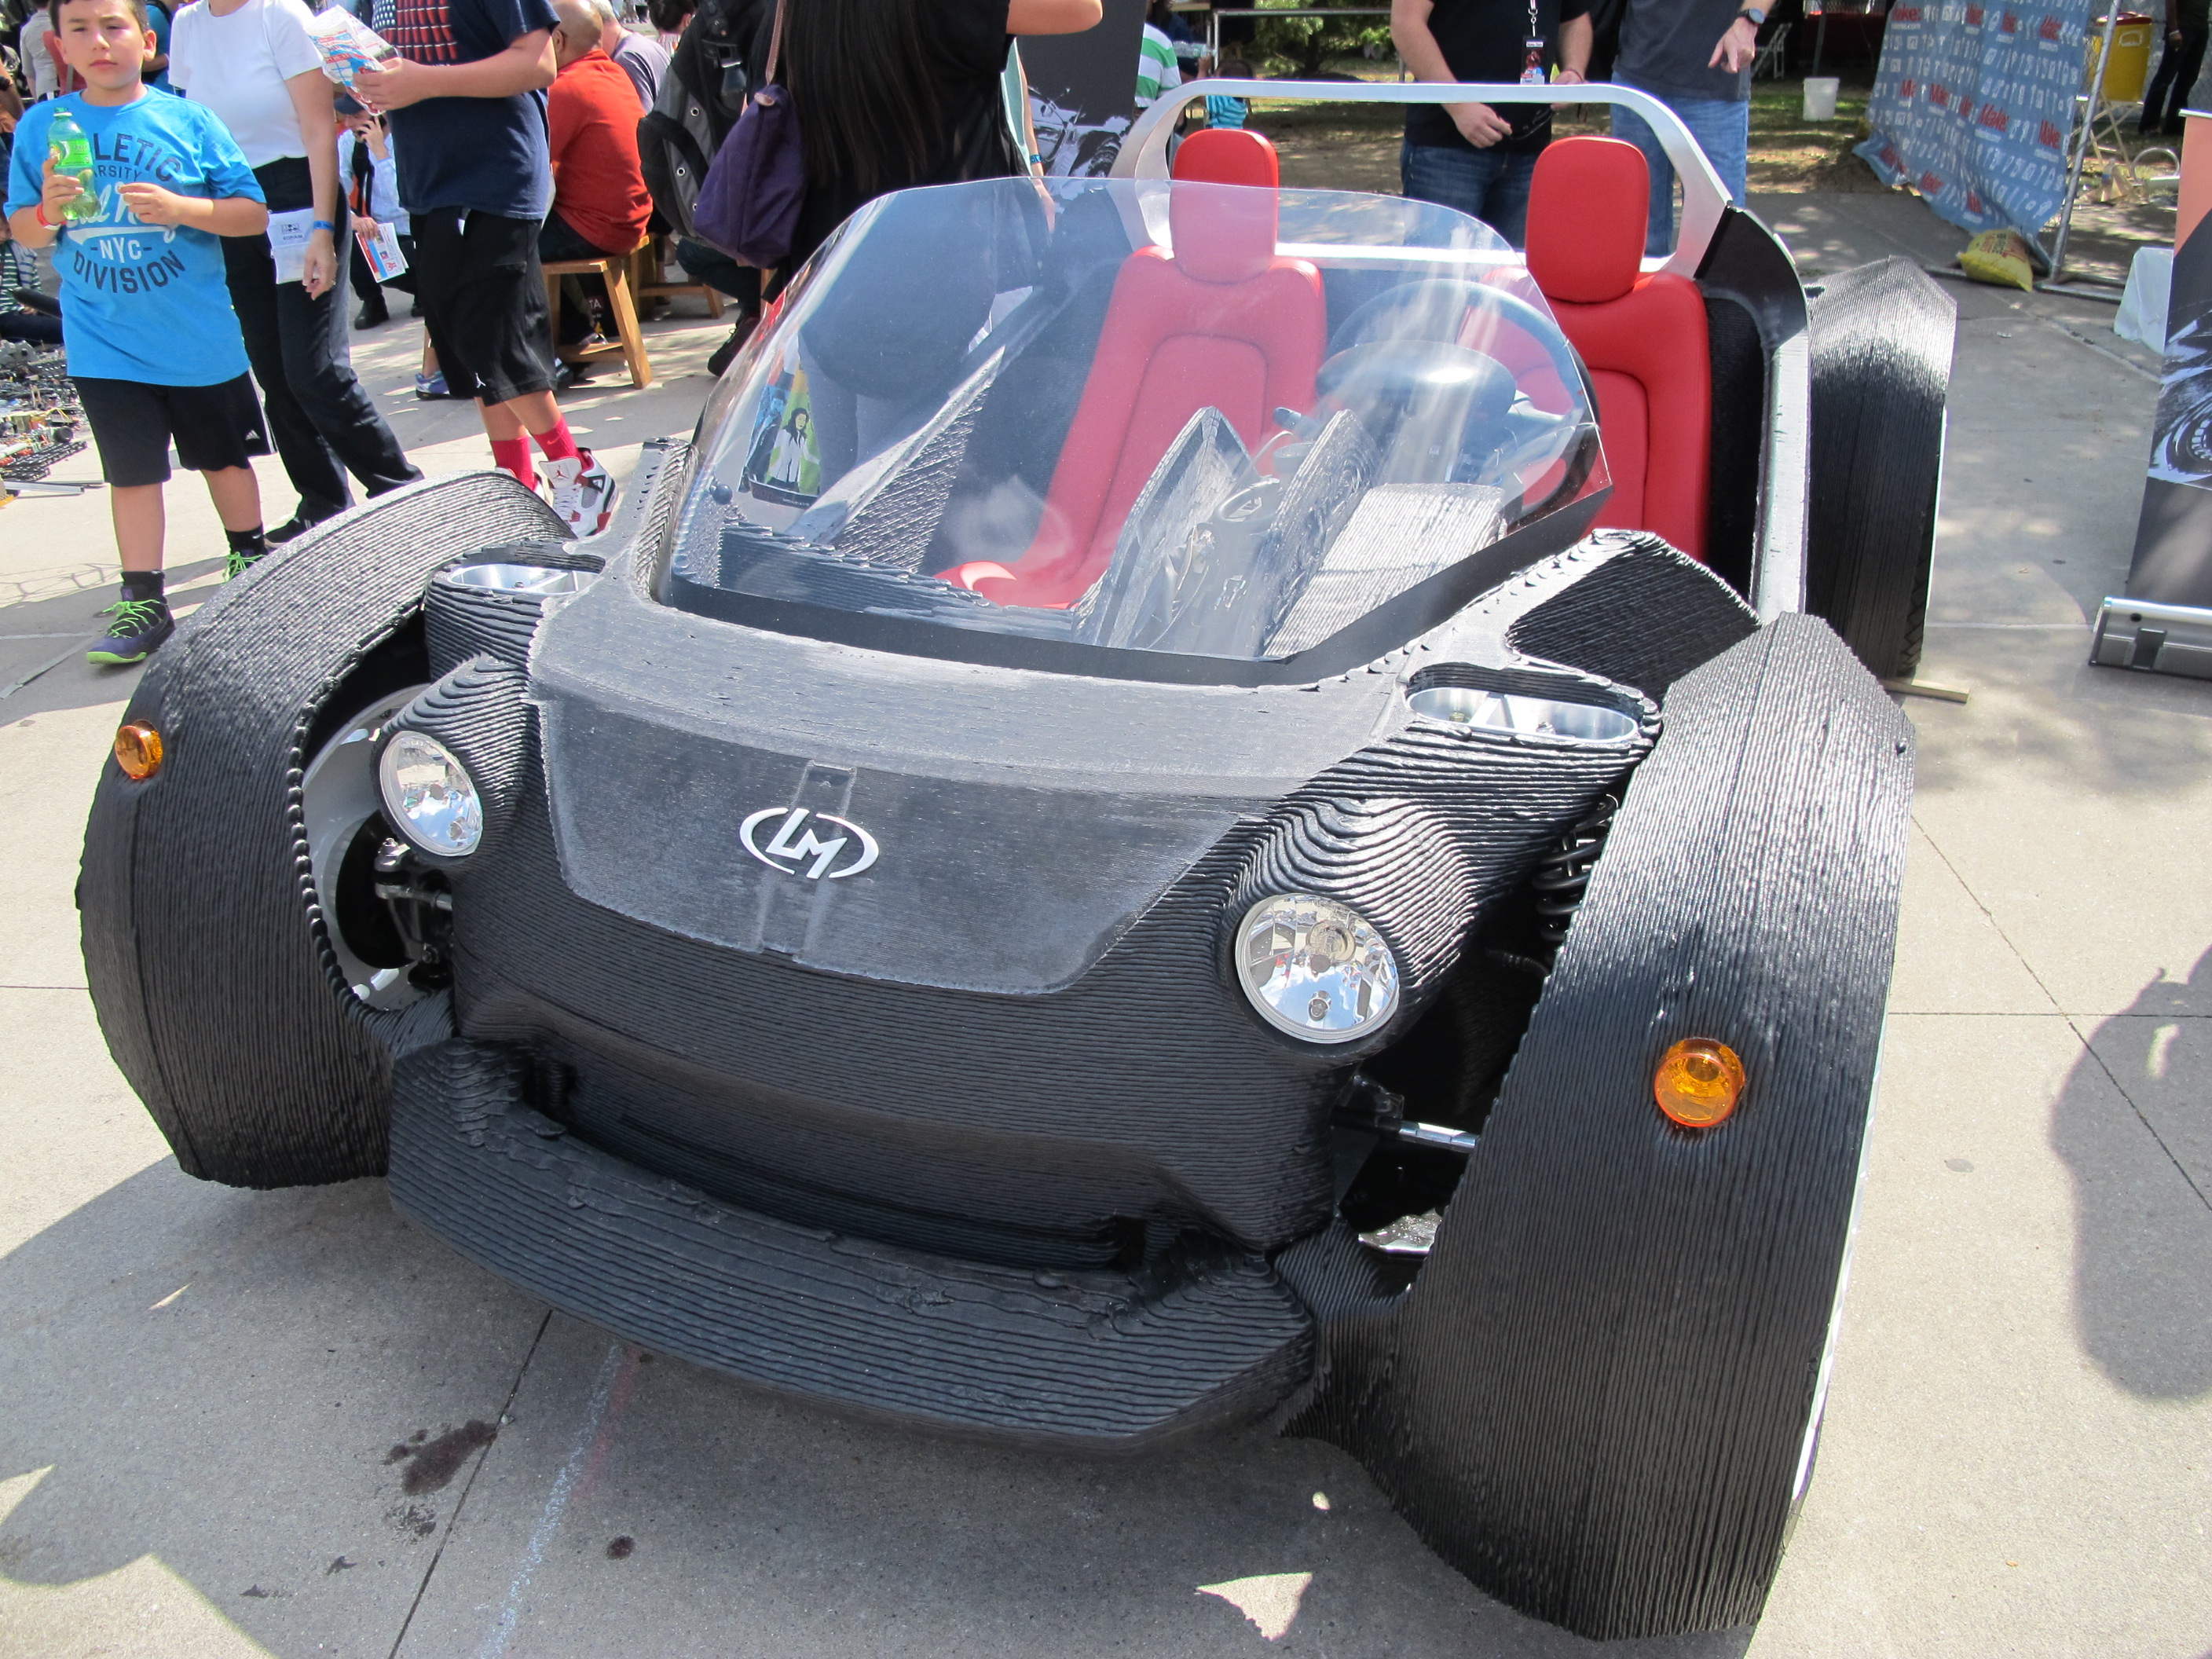 Try These at Home: Ten Cool Things to Make from Maker Faire